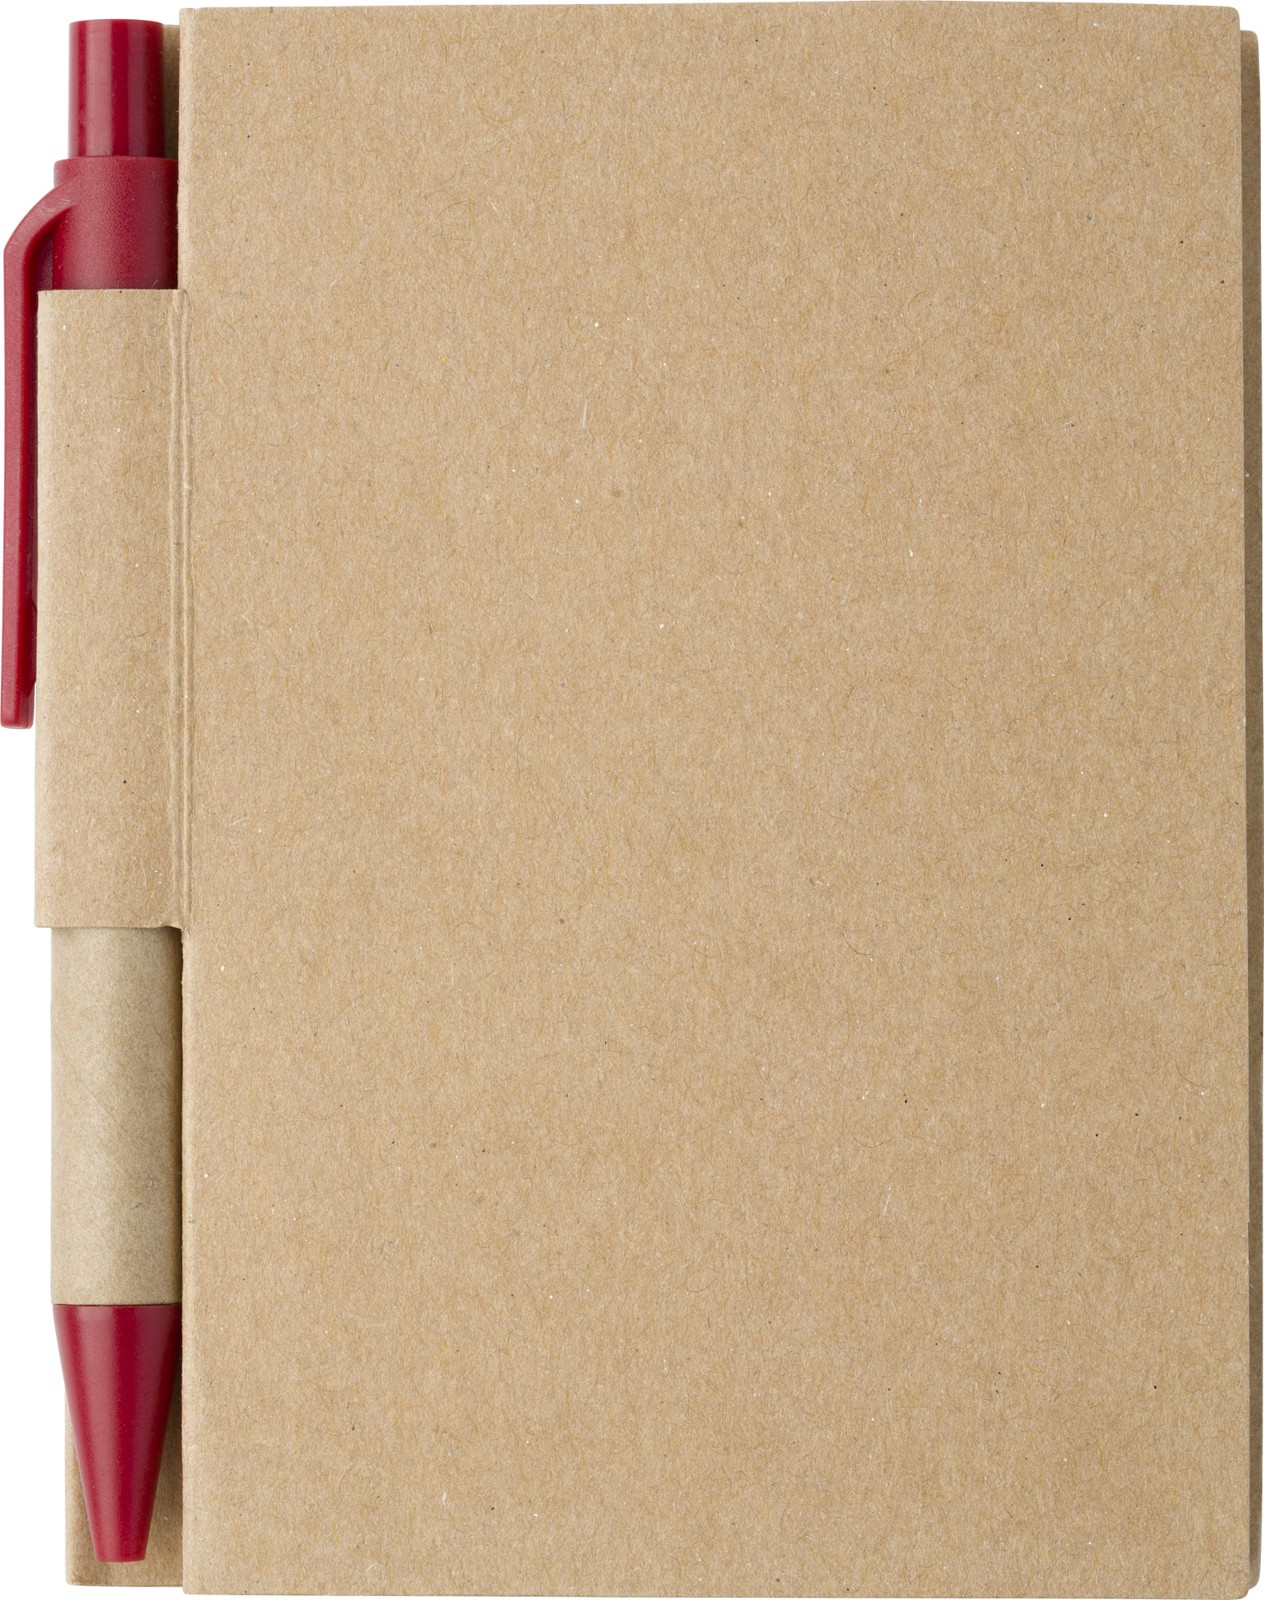 Paper notebook - Red